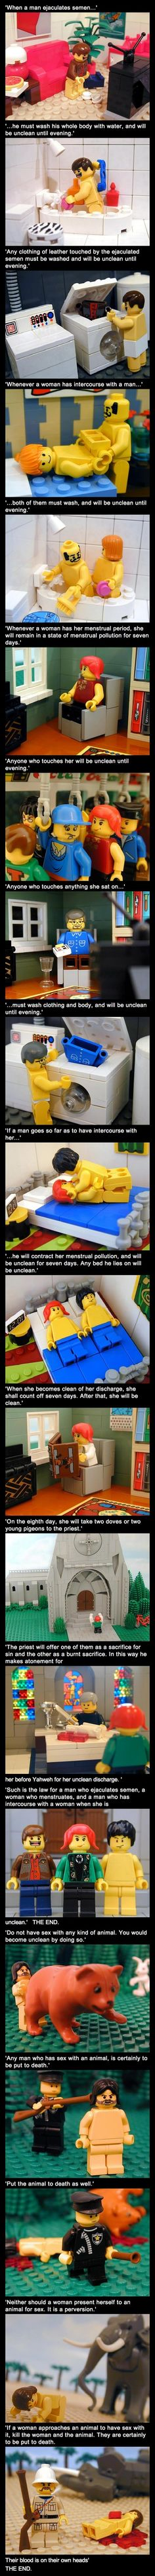 Laws from Leviticus, delivered through 'artfully' posed LEGOs. LMFAO!!!